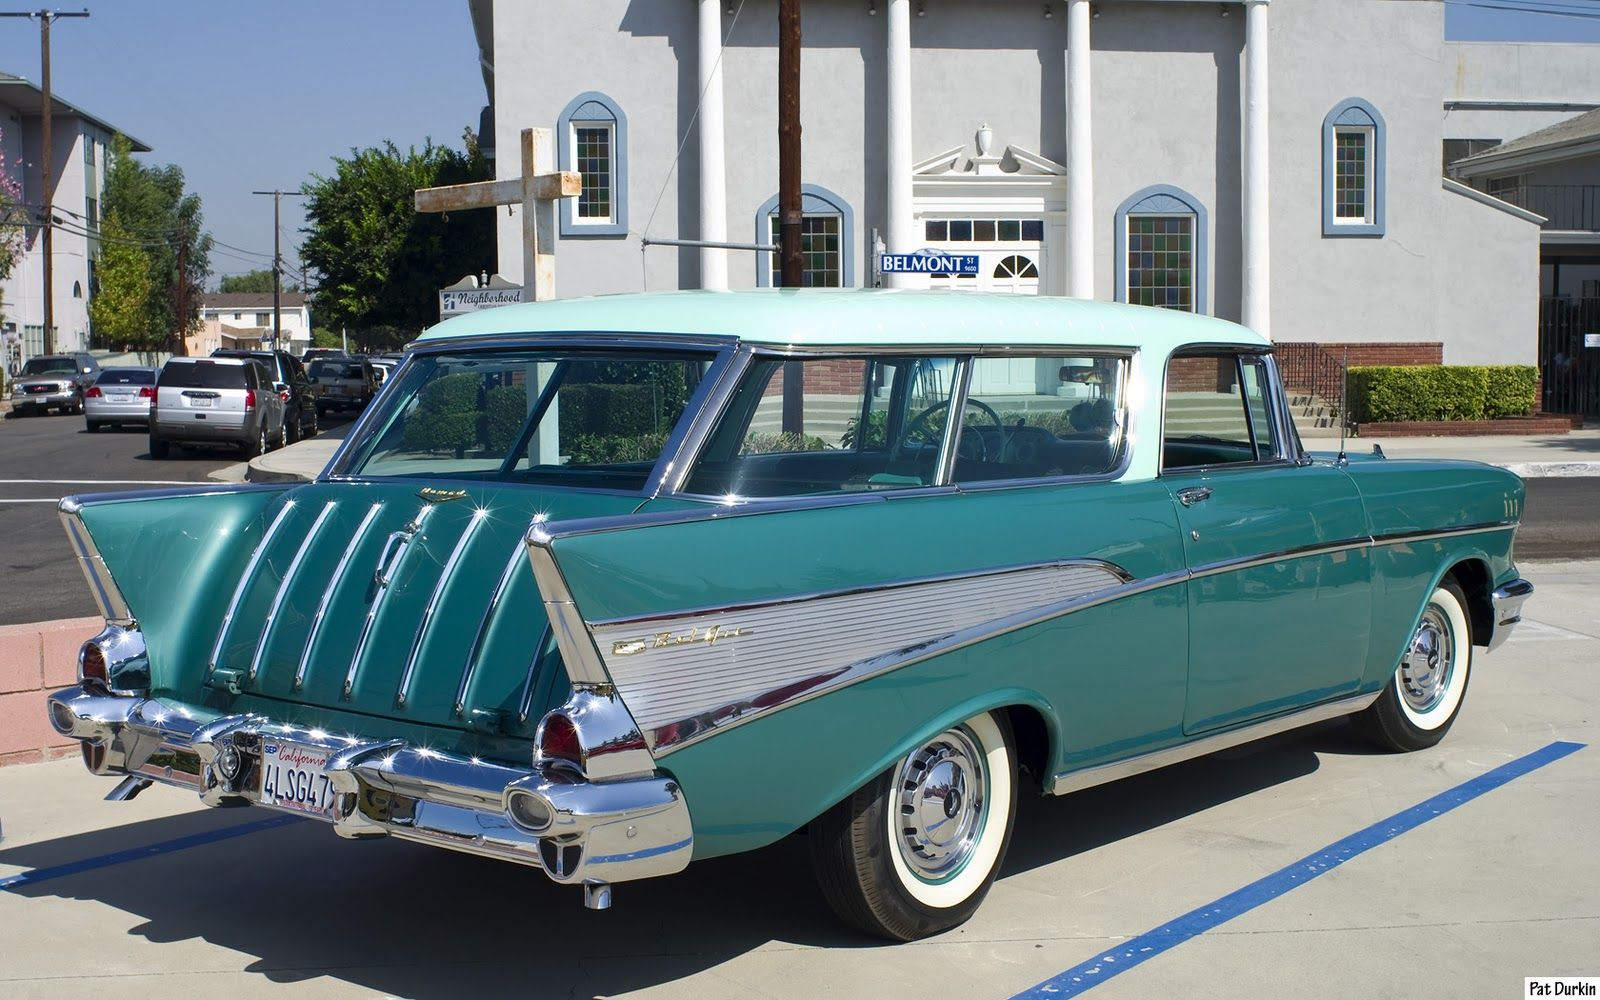 Very clean 2 door 1957 chevrolet nomad station wagon